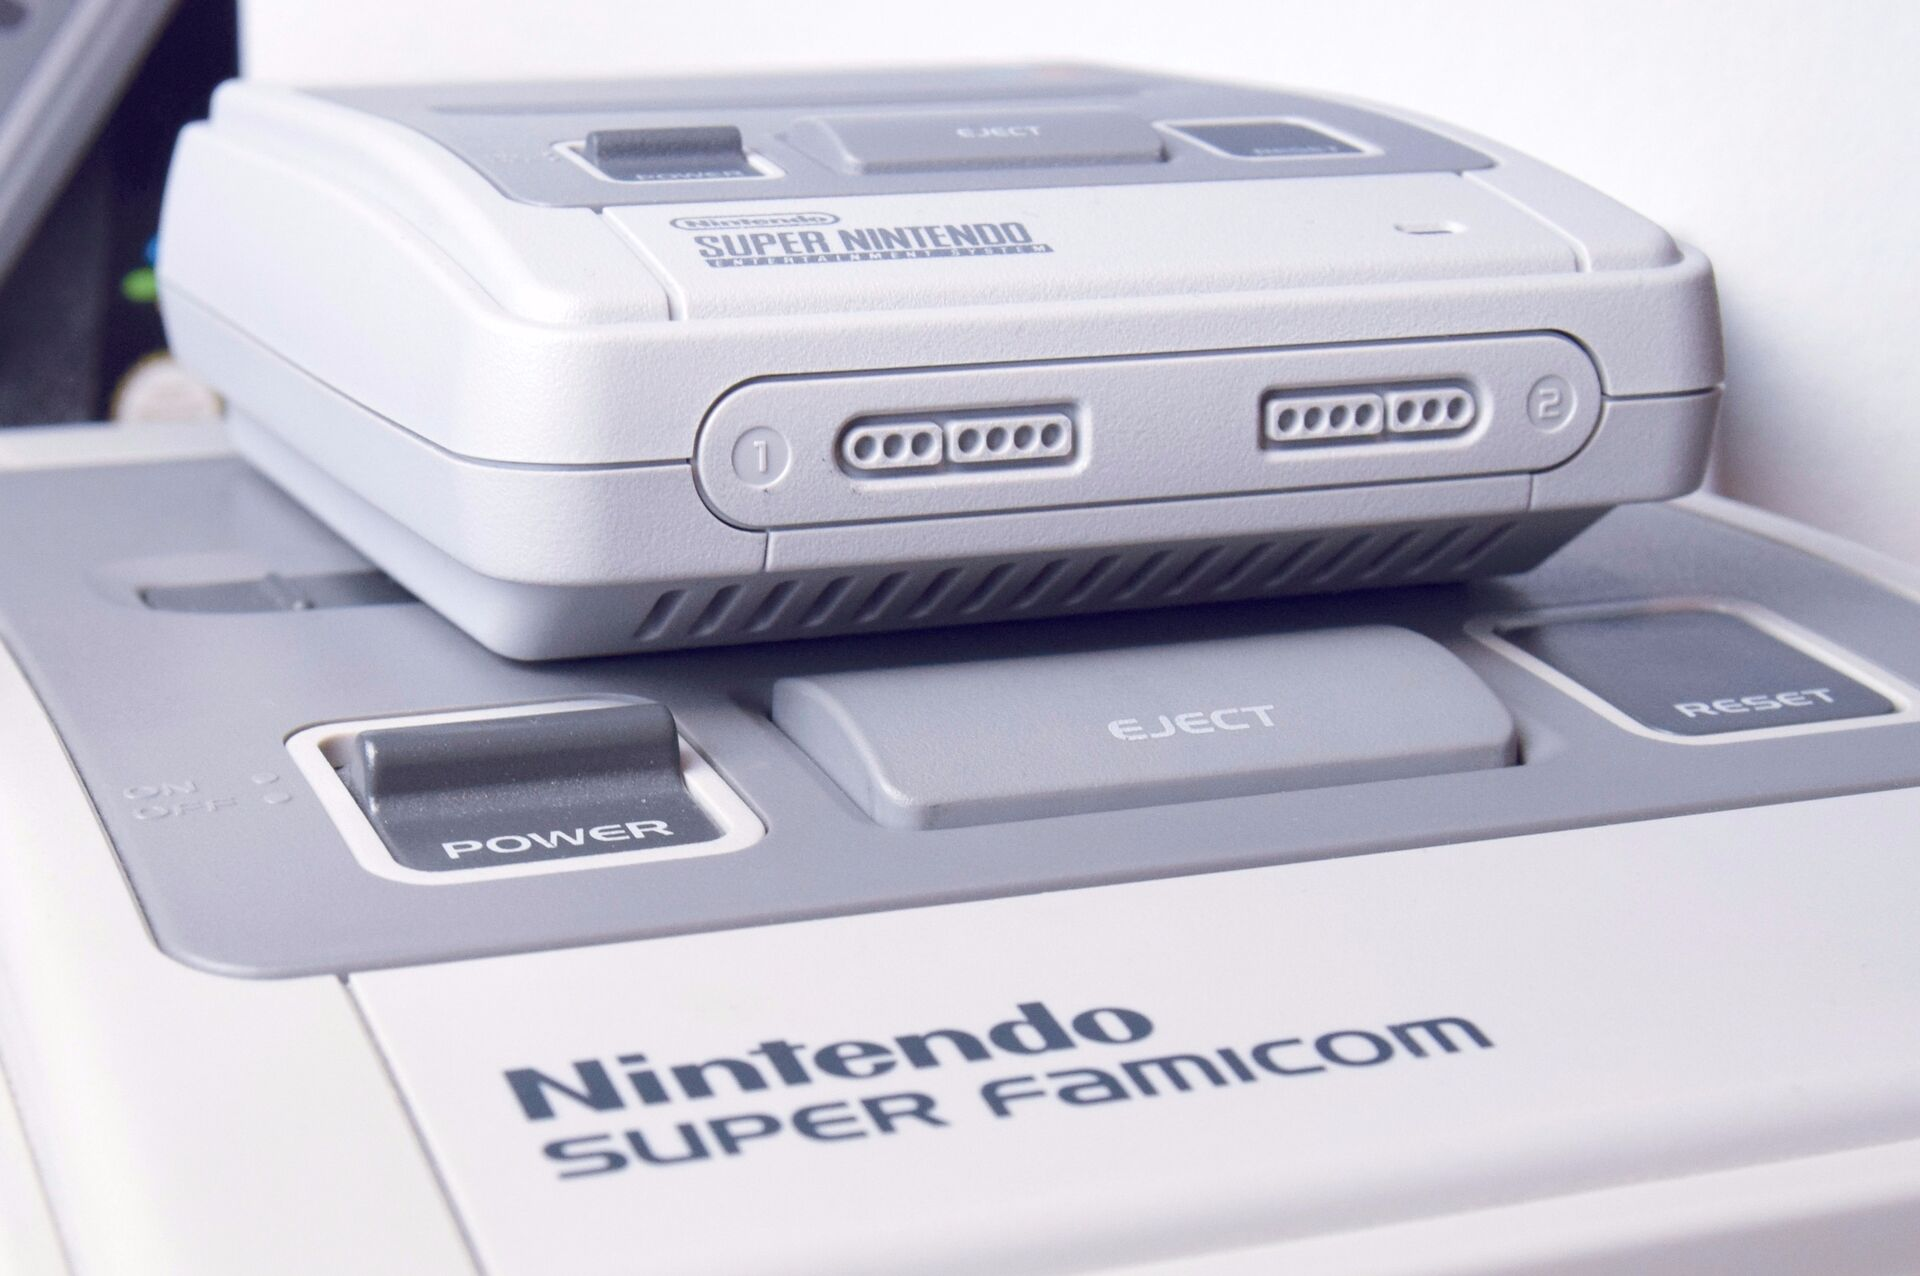 SNES mini already hacked to play downloaded games